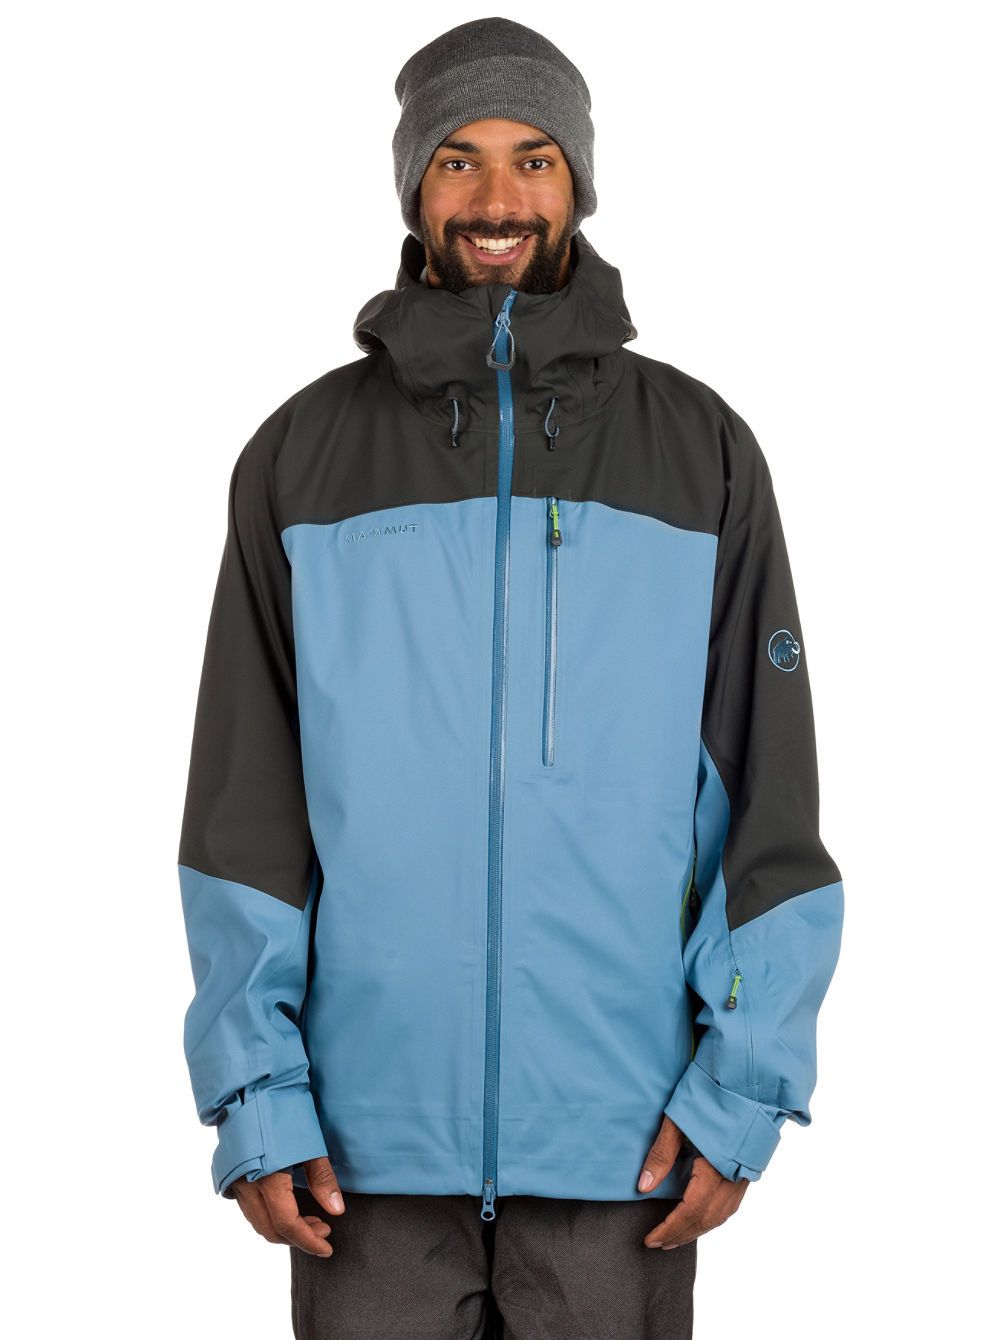 a2e2012212 Alvier Tour Hs Hooded Giacca